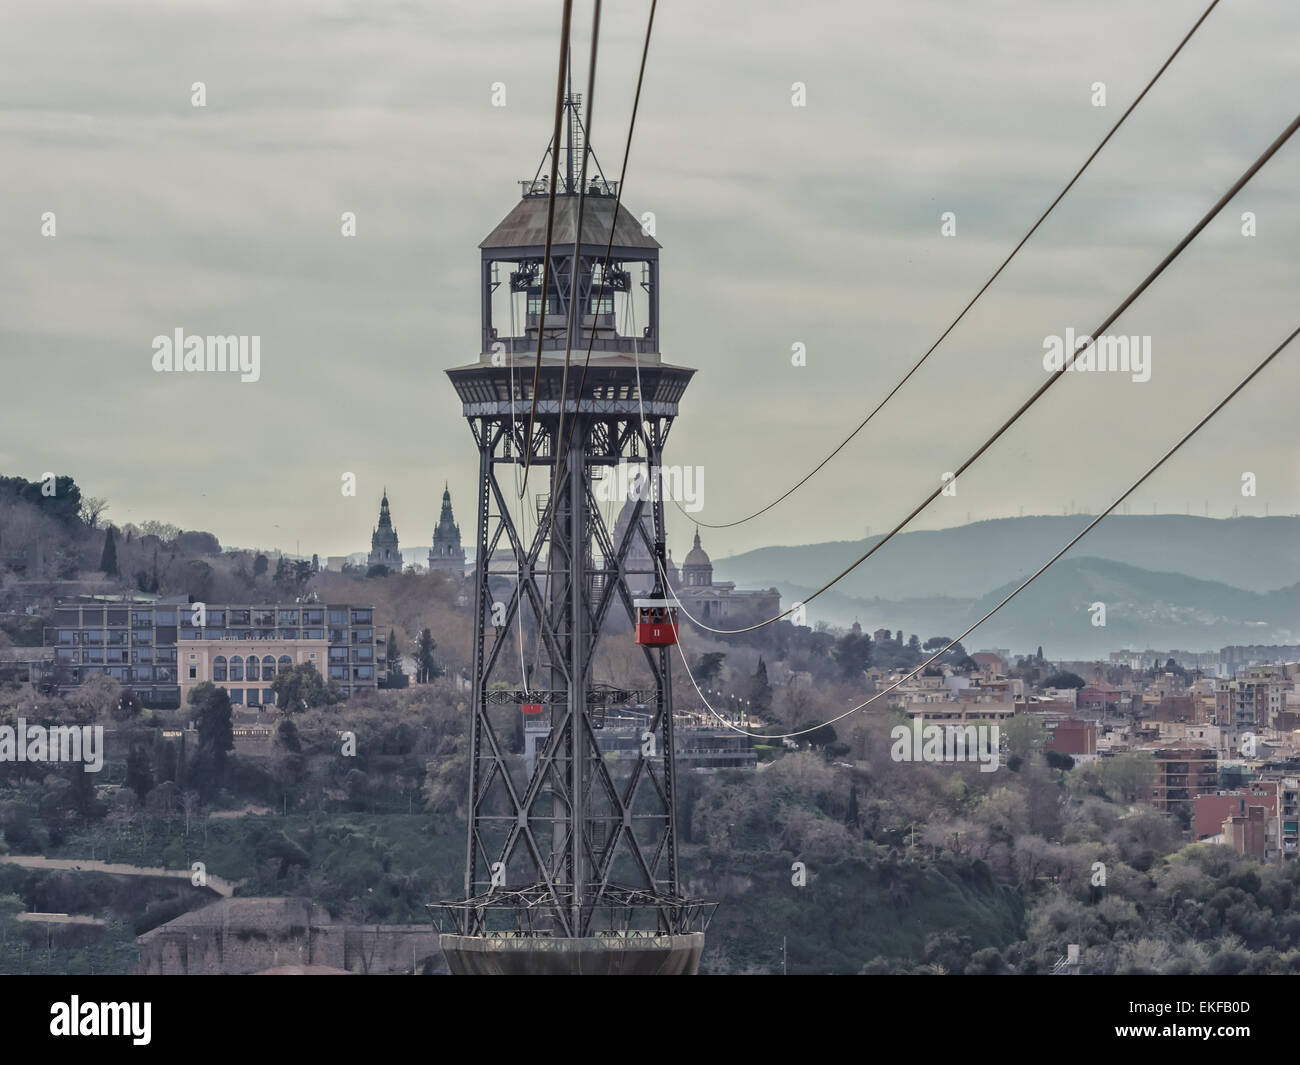 Torre Jaume I funicular with two cableway cars, Barcelona Spain - Stock Image